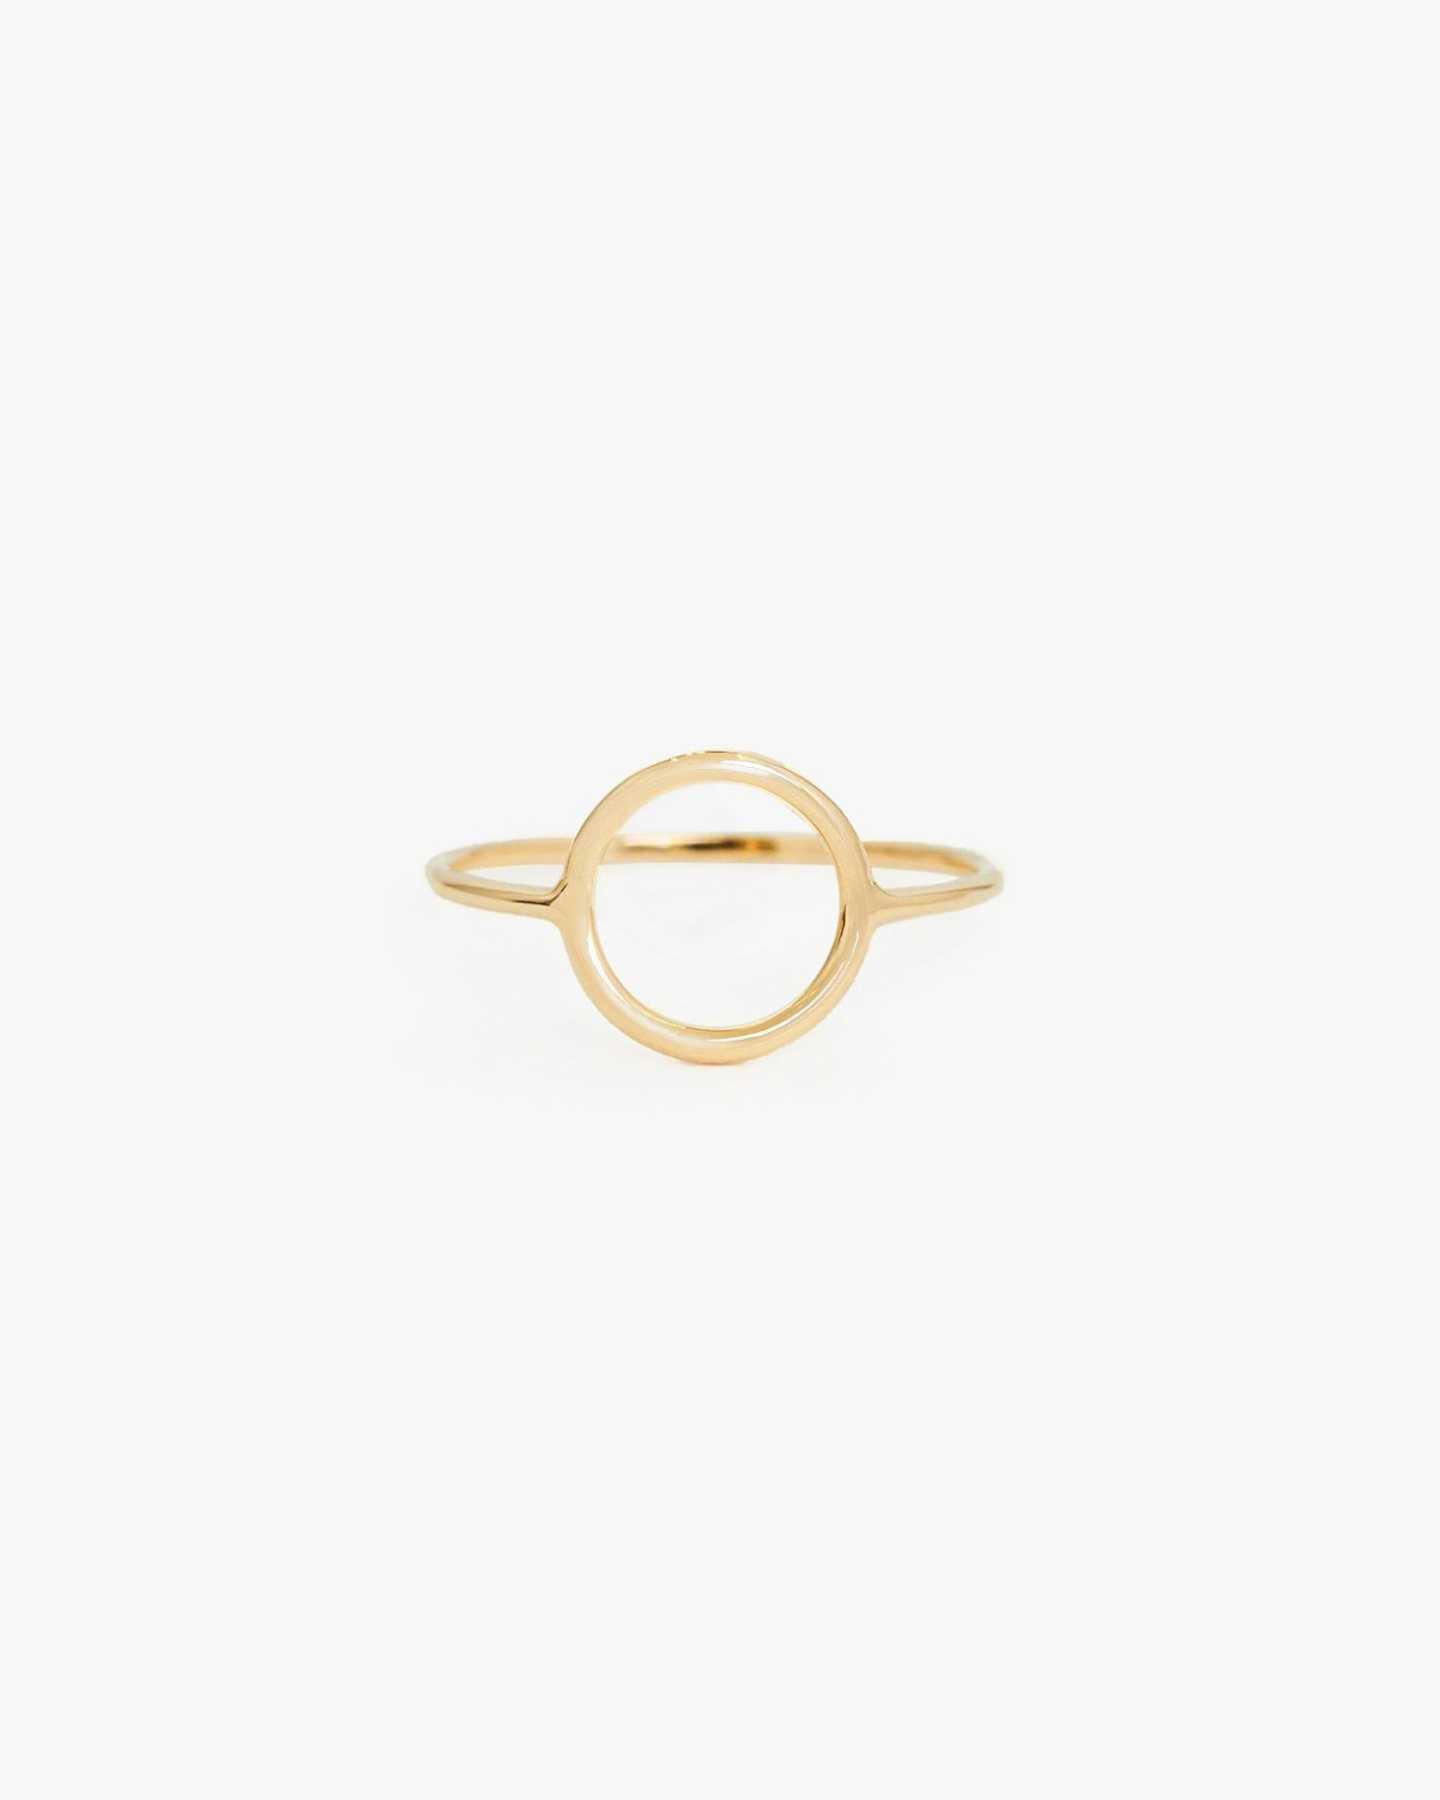 You May Also Like - 14k Gold Circle Ring - Yellow Gold